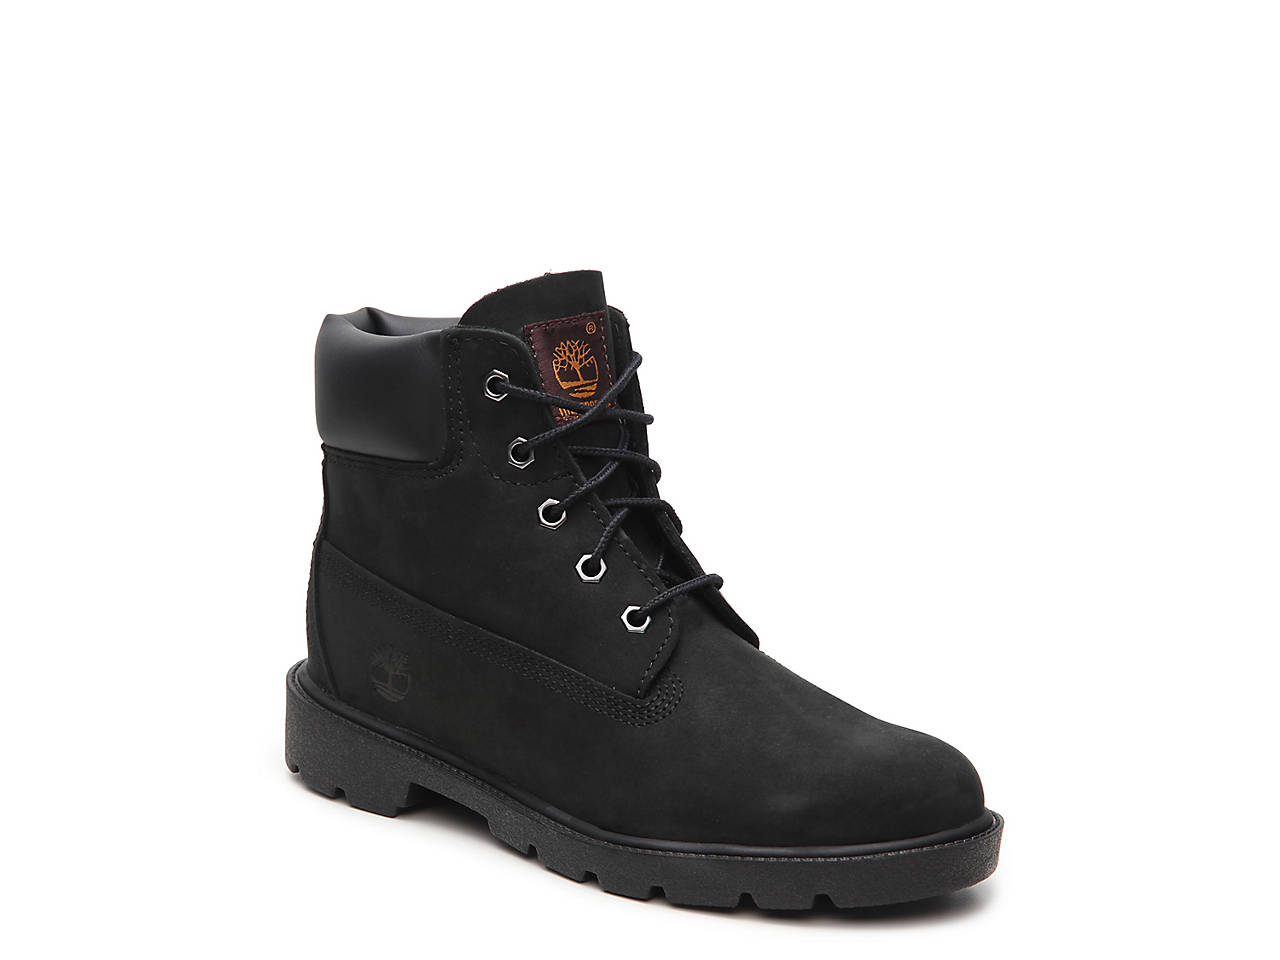 e91df35b00ae Timberland 6 Inch Classic Youth Boot Kids Shoes